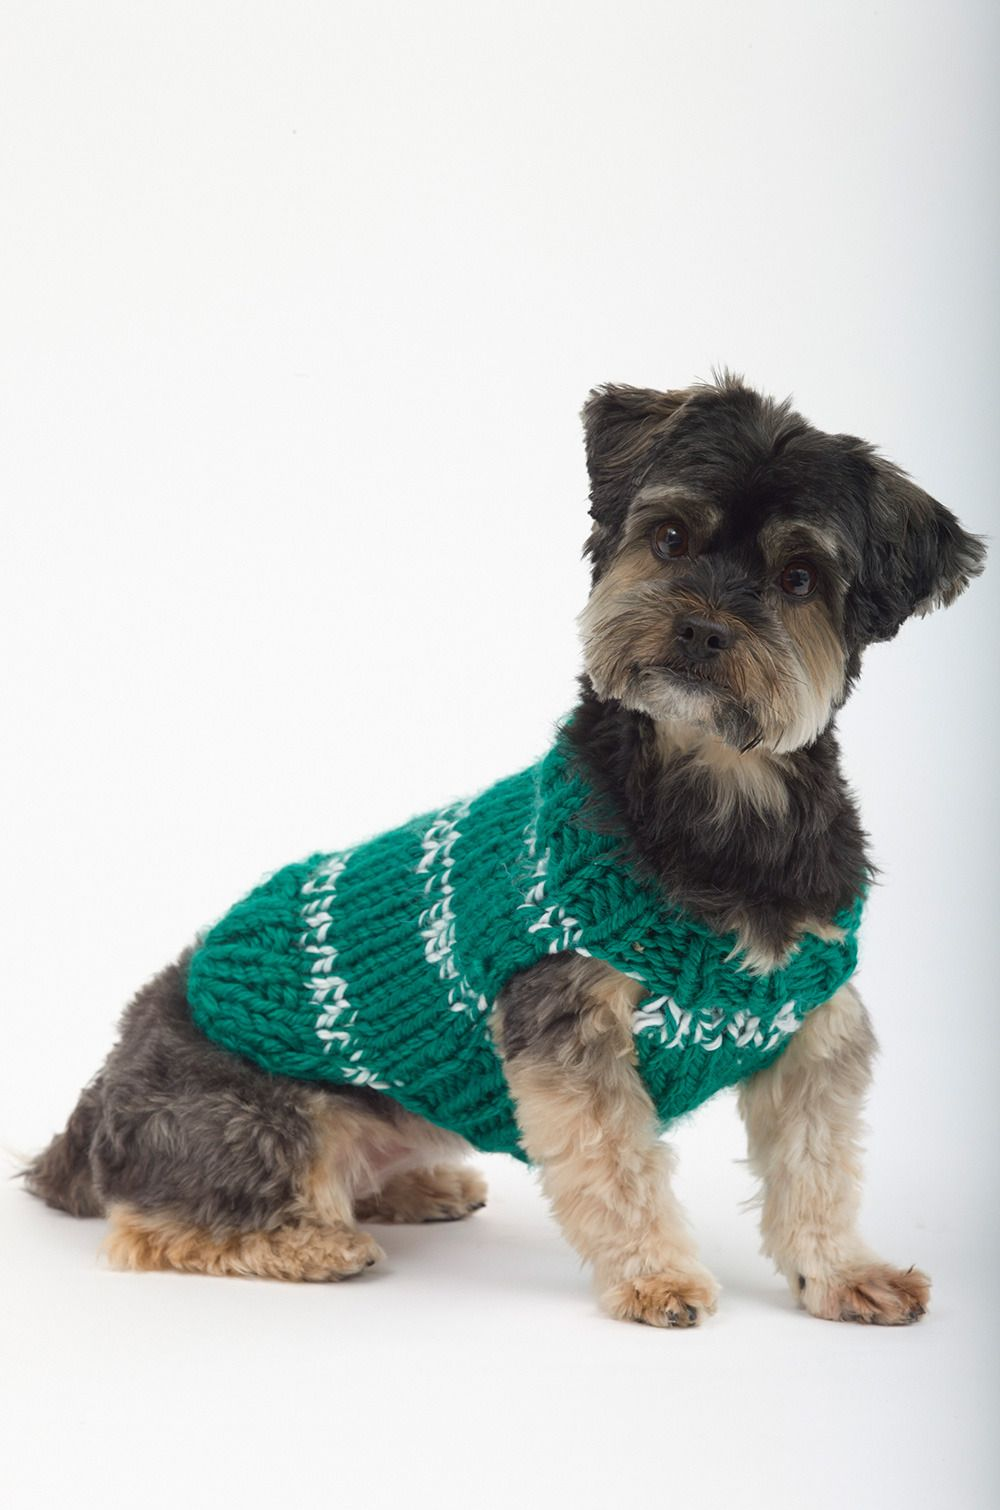 Top 5 Free Dog Sweater Knitting Patterns | Mascotas, Moda canina y ...